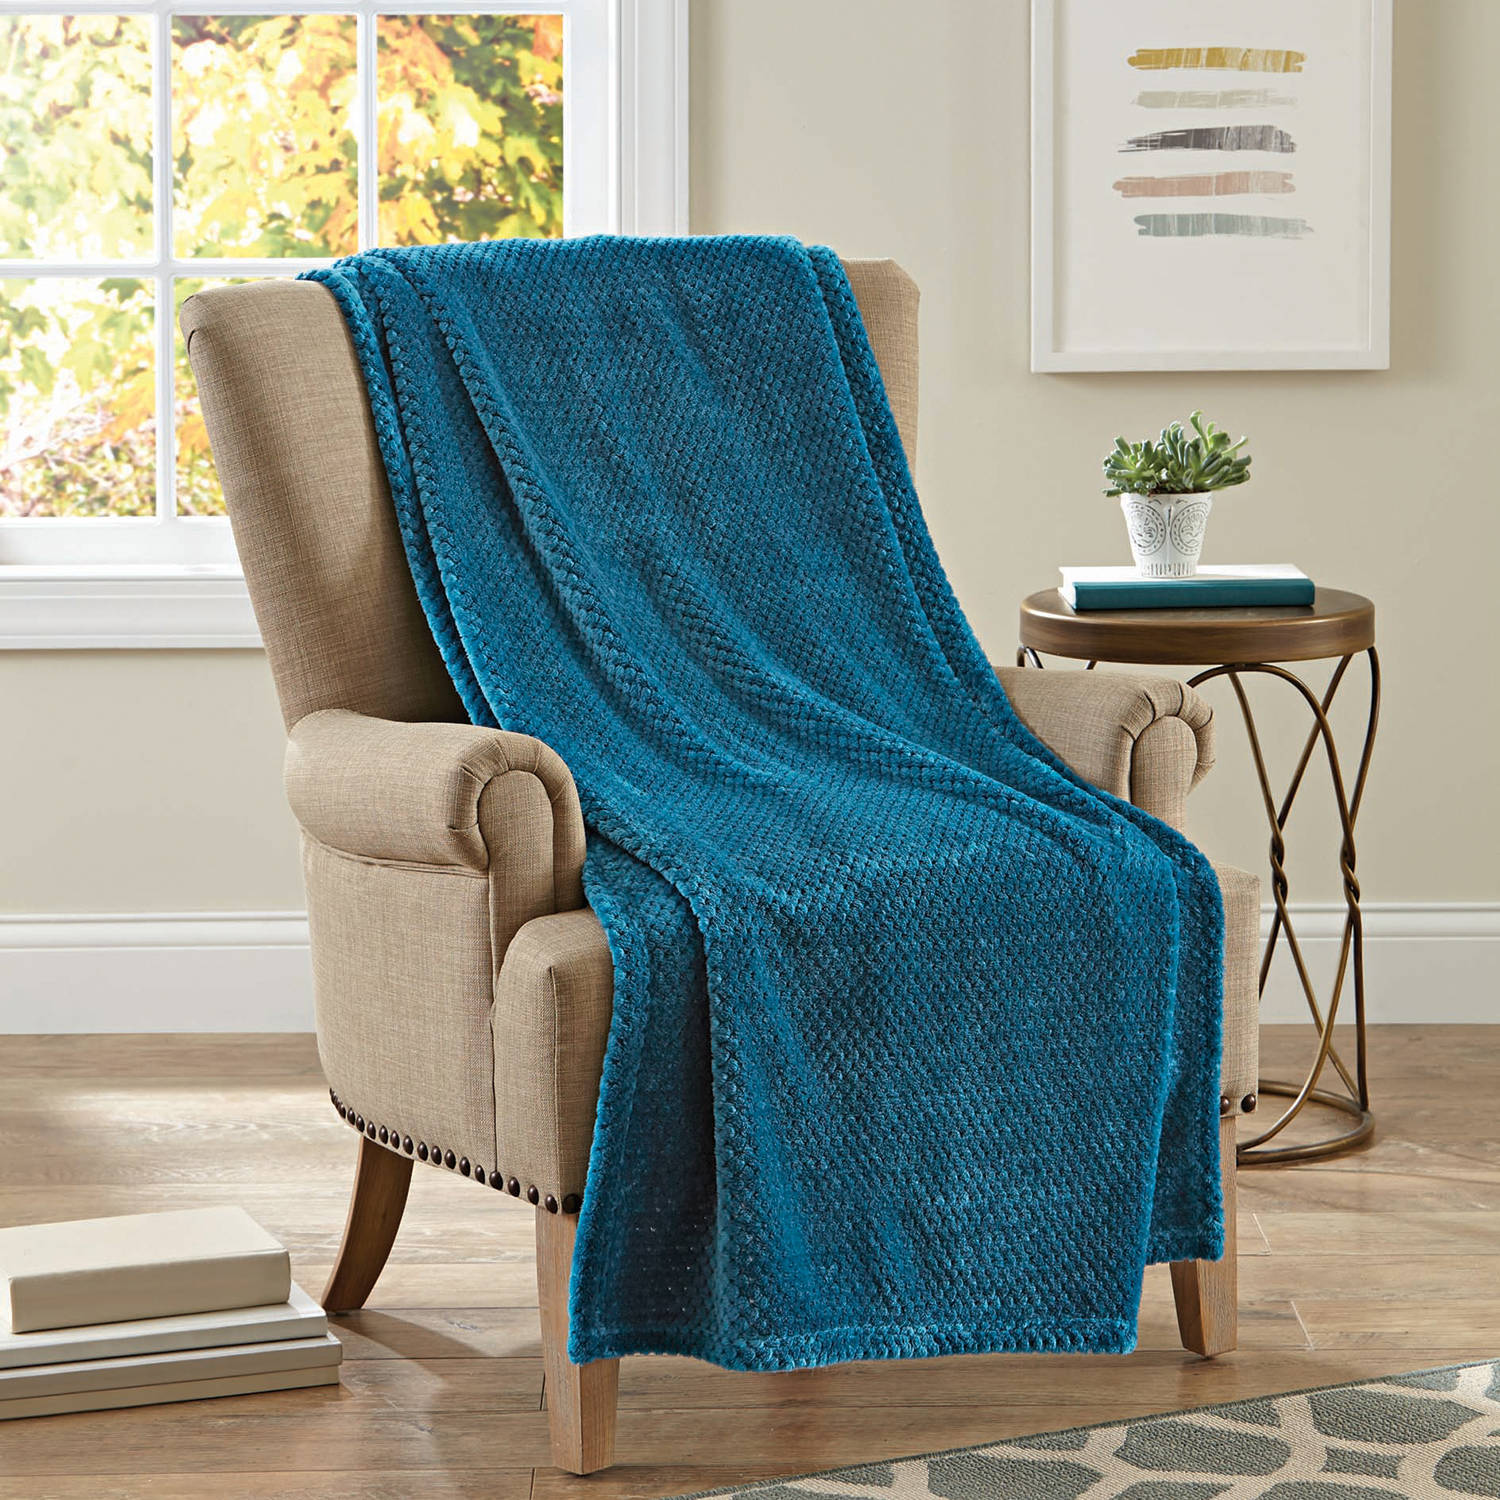 "Better Homes and Gardens Velvet Plush 50"" x 70"" Throw, Teal Popcorn Texture"